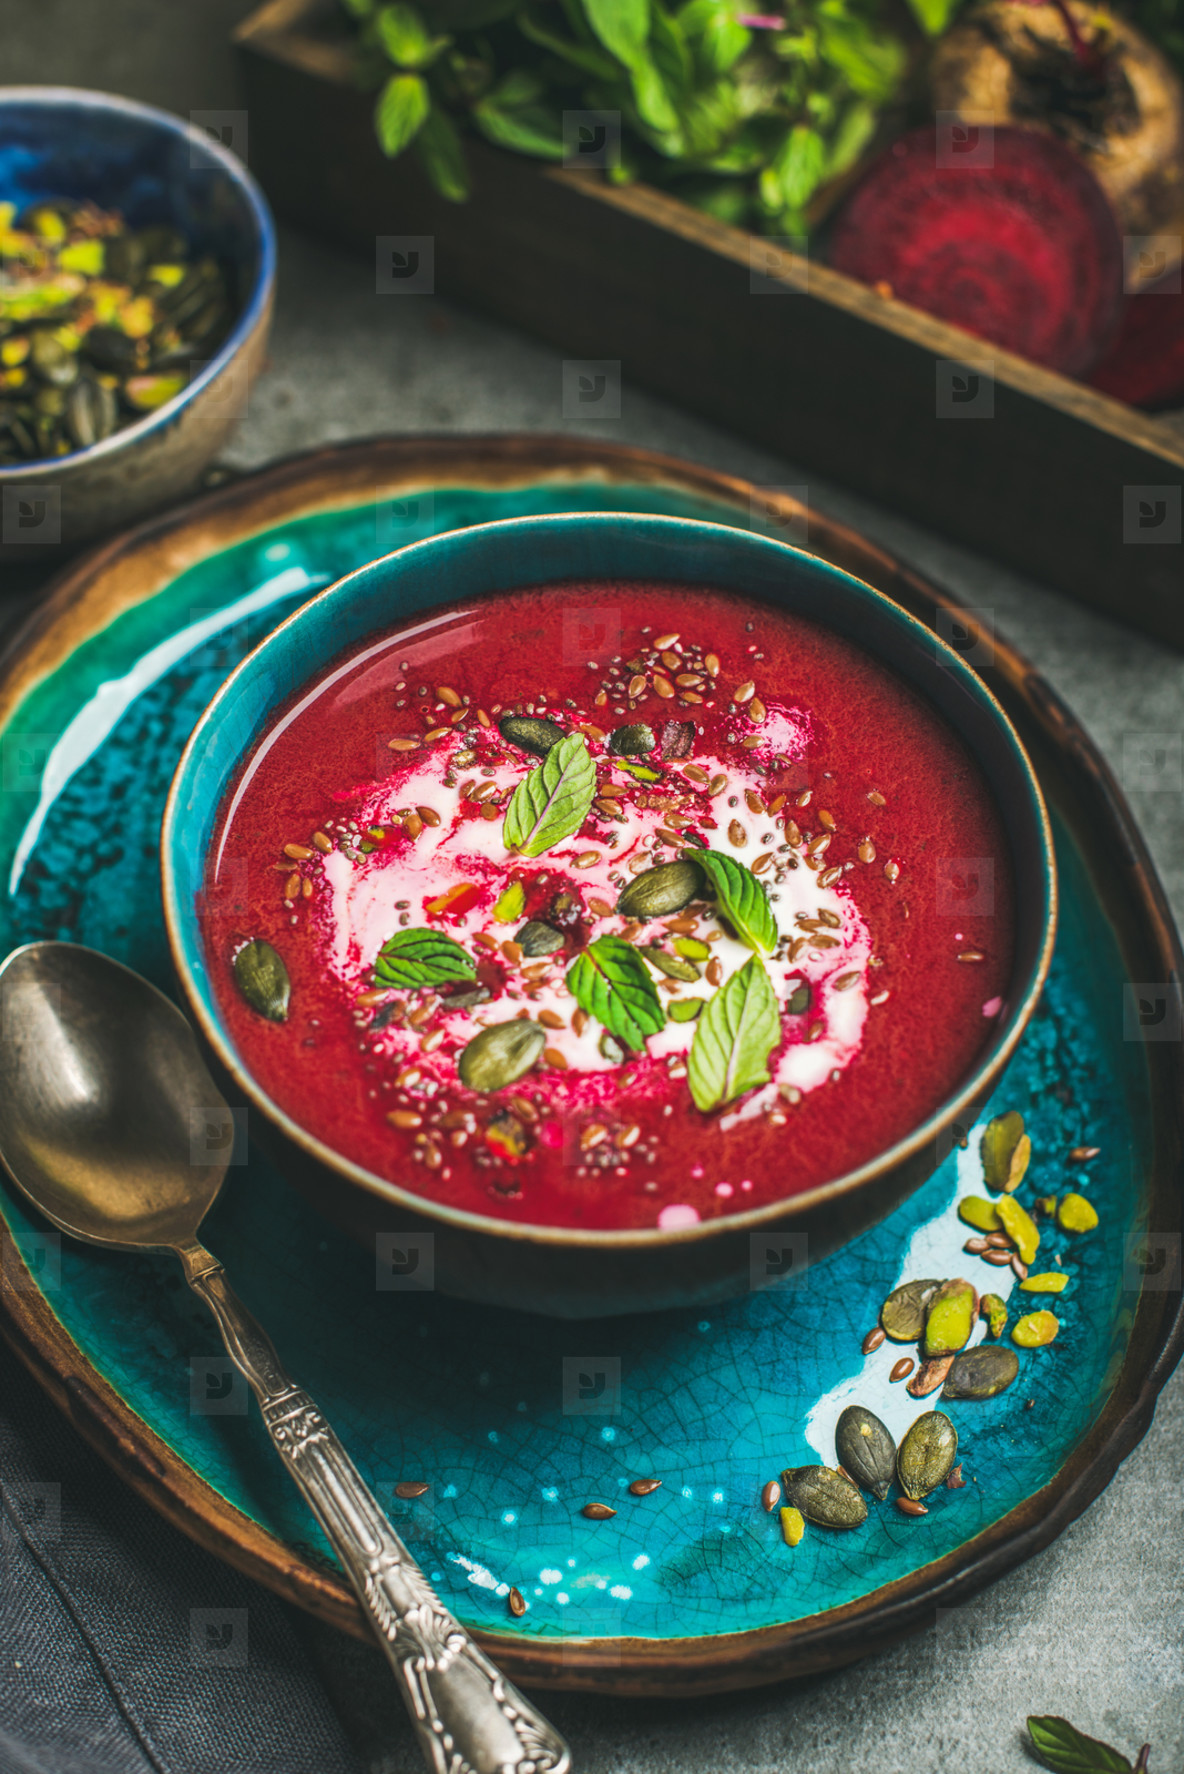 Beetroot vegan soup with mint  chia  flax and pumpkin seeds